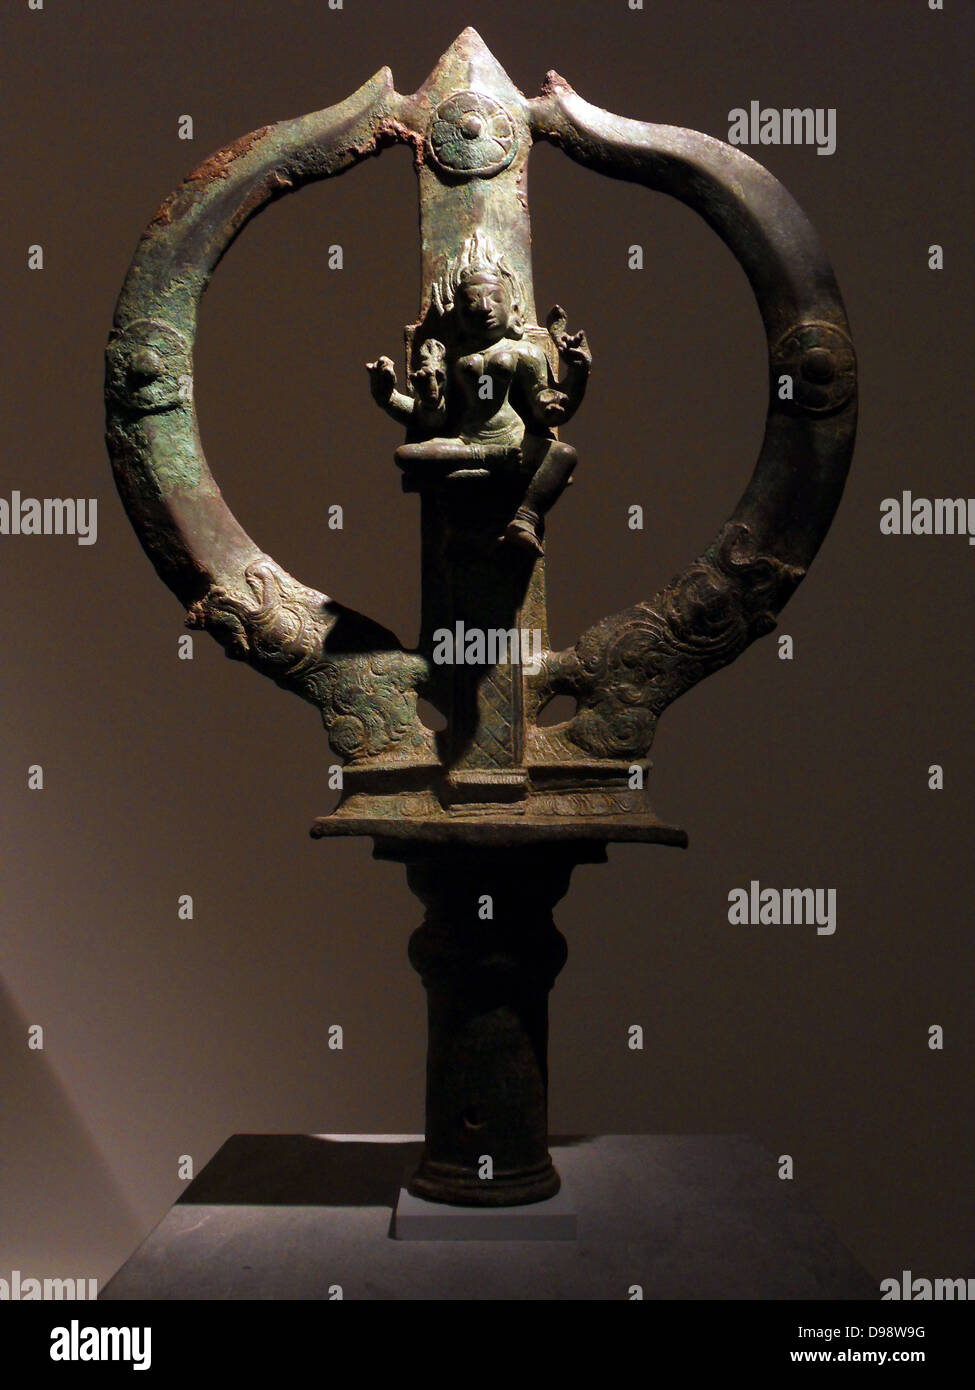 Trident Mariyammai bearing the image of the Hindu goddess of smallpox. Chola dynasty (850-1100 AD) bronze sculpture - Stock Image